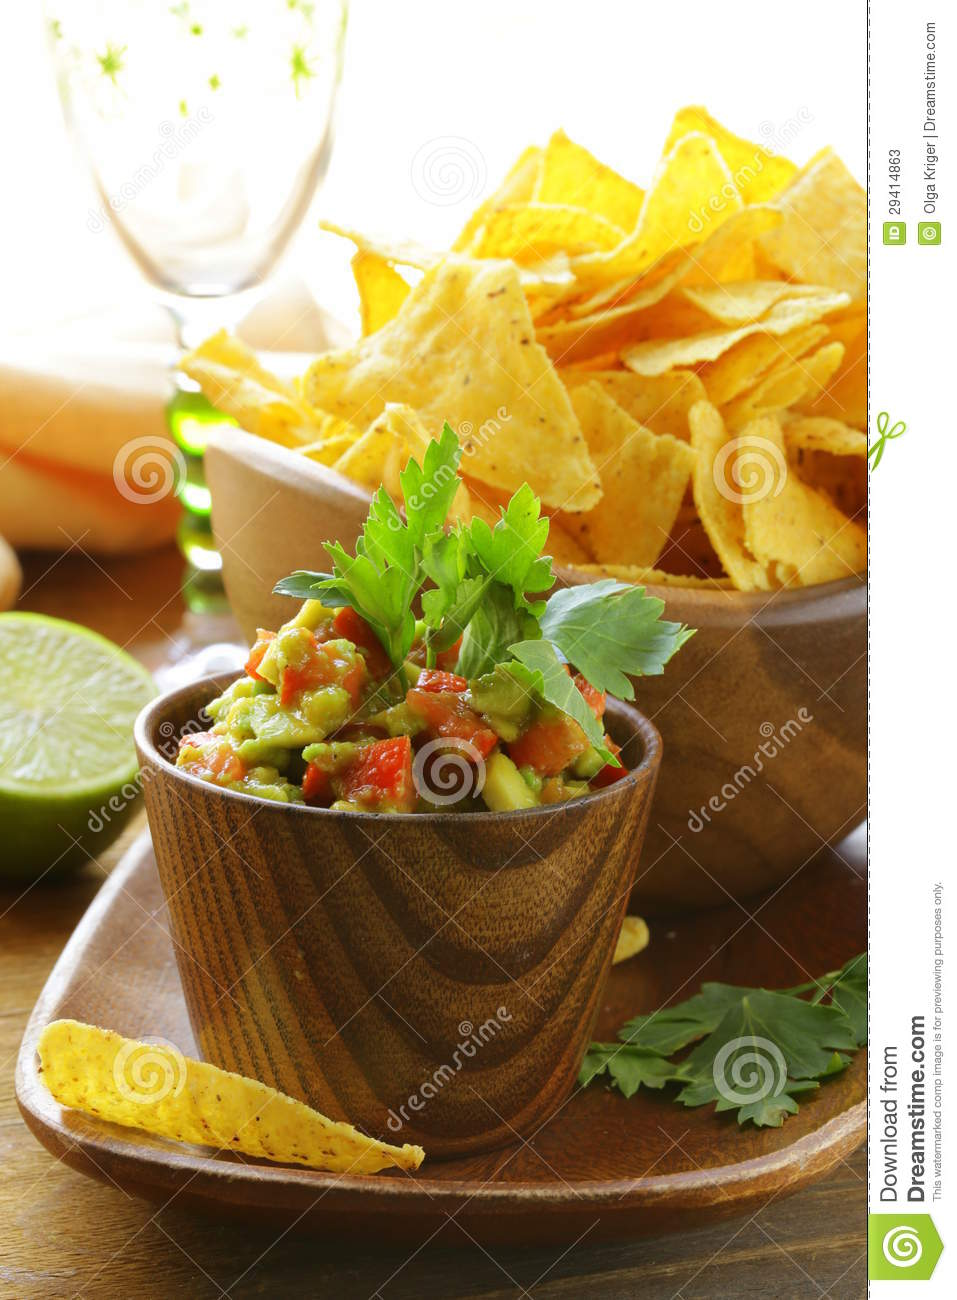 Crab And Avocado Dip On Tortilla Chips Recipes — Dishmaps